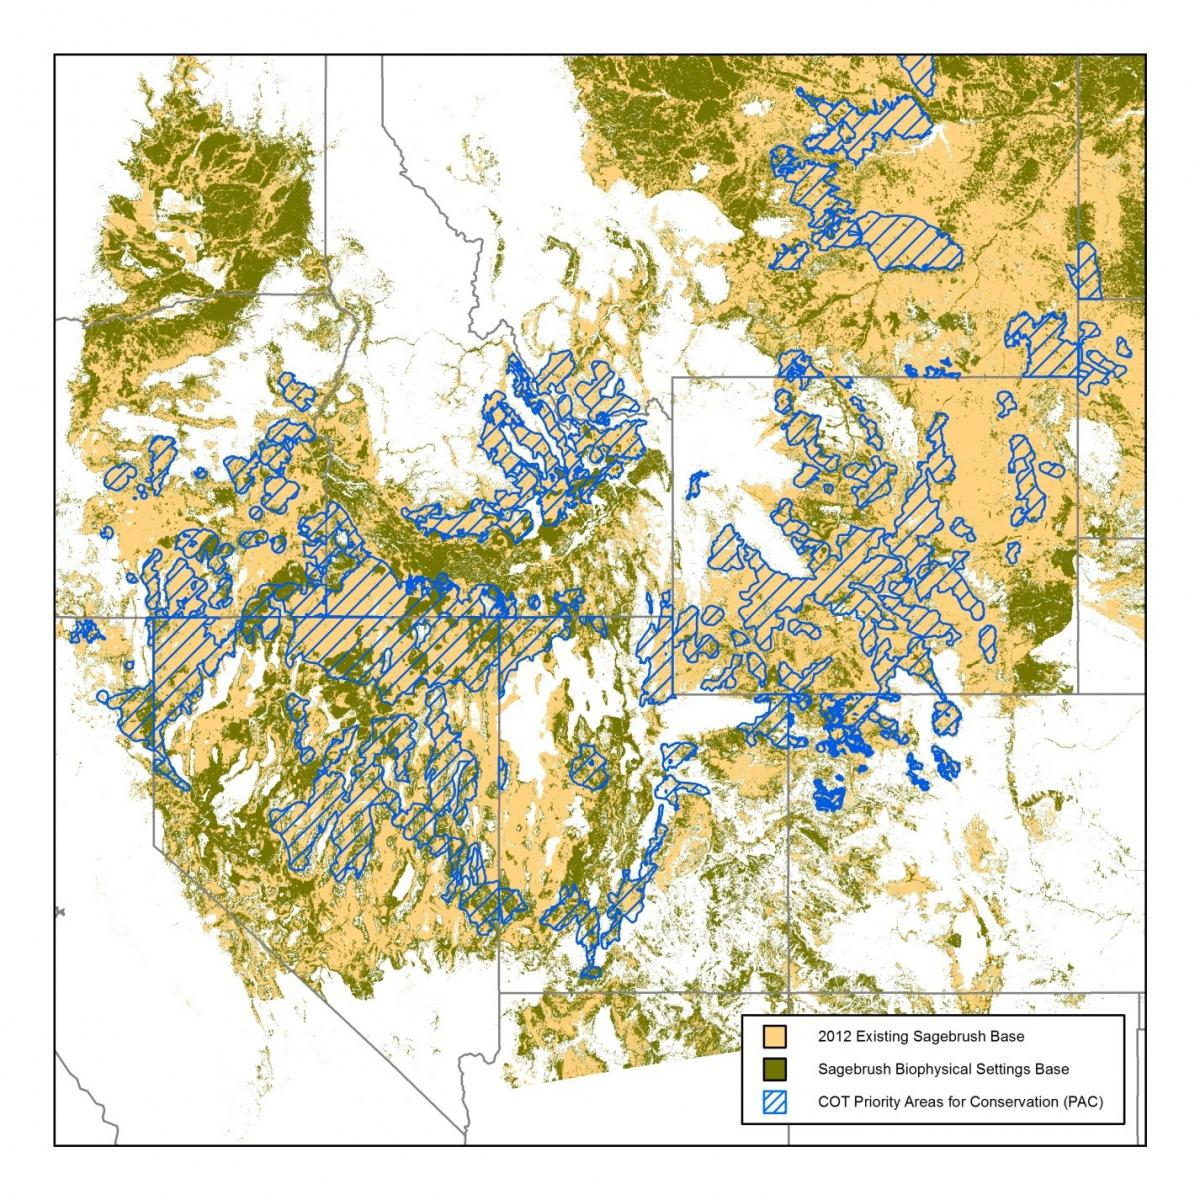 Sagebrush layer map